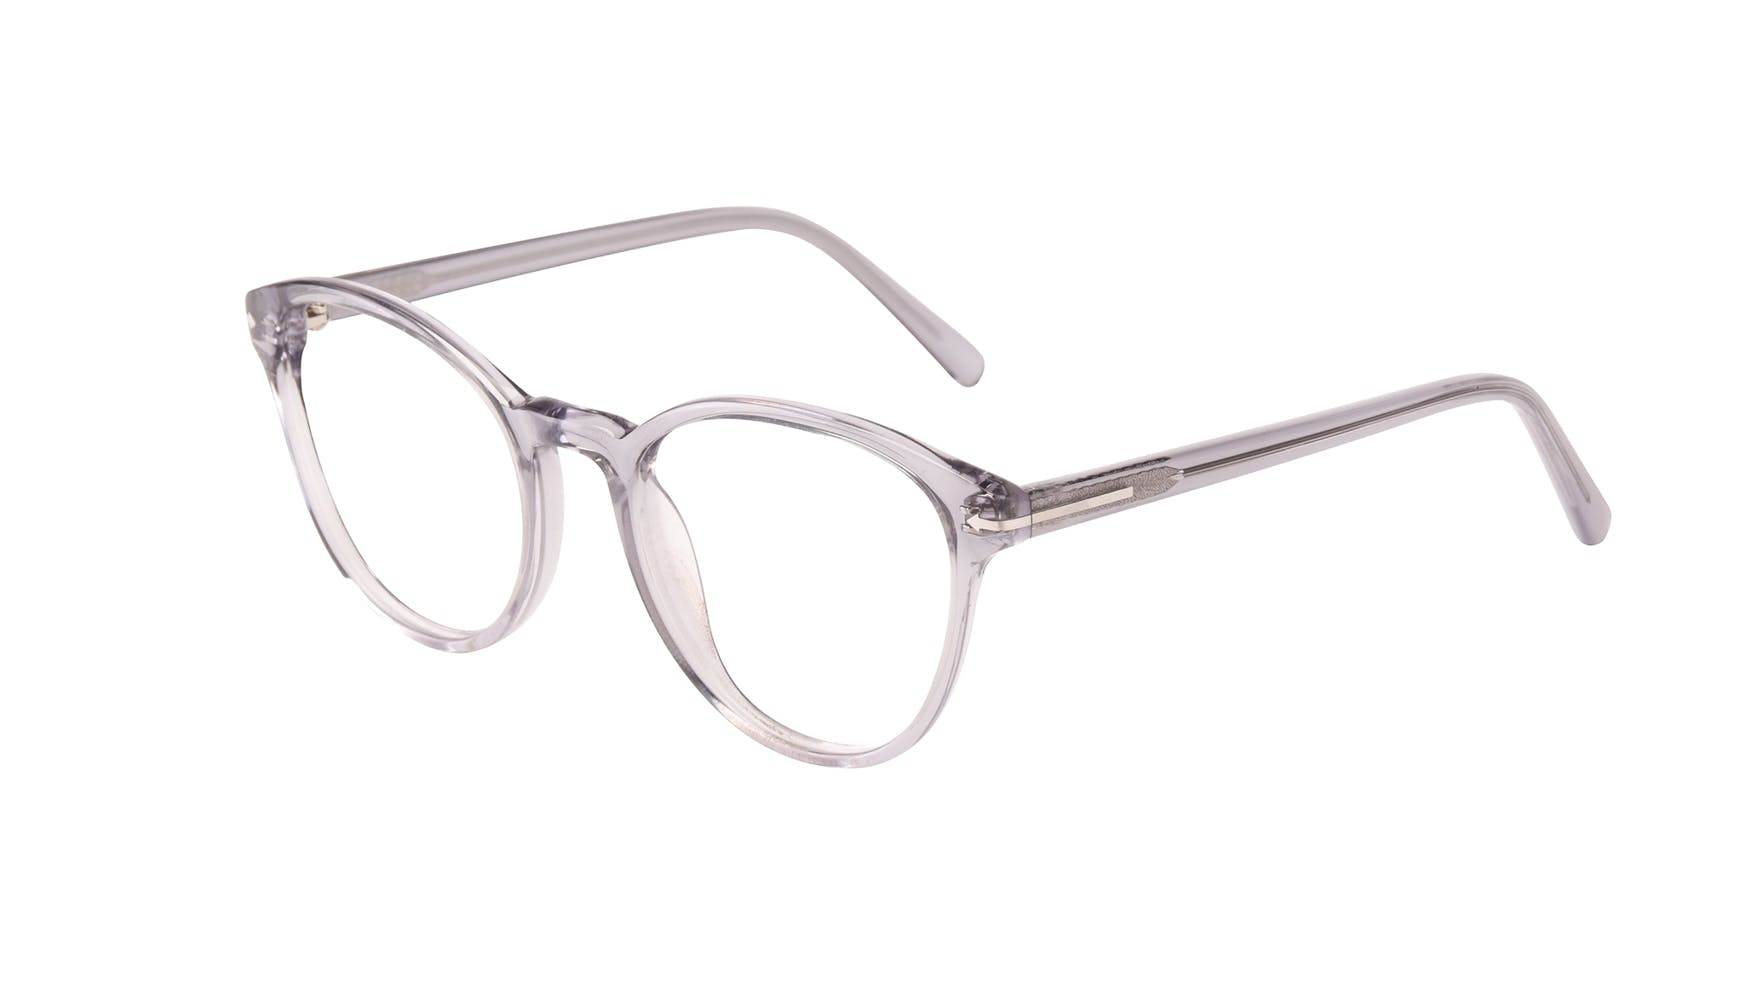 Affordable Fashion Glasses Round Eyeglasses Women London Fog Tilt